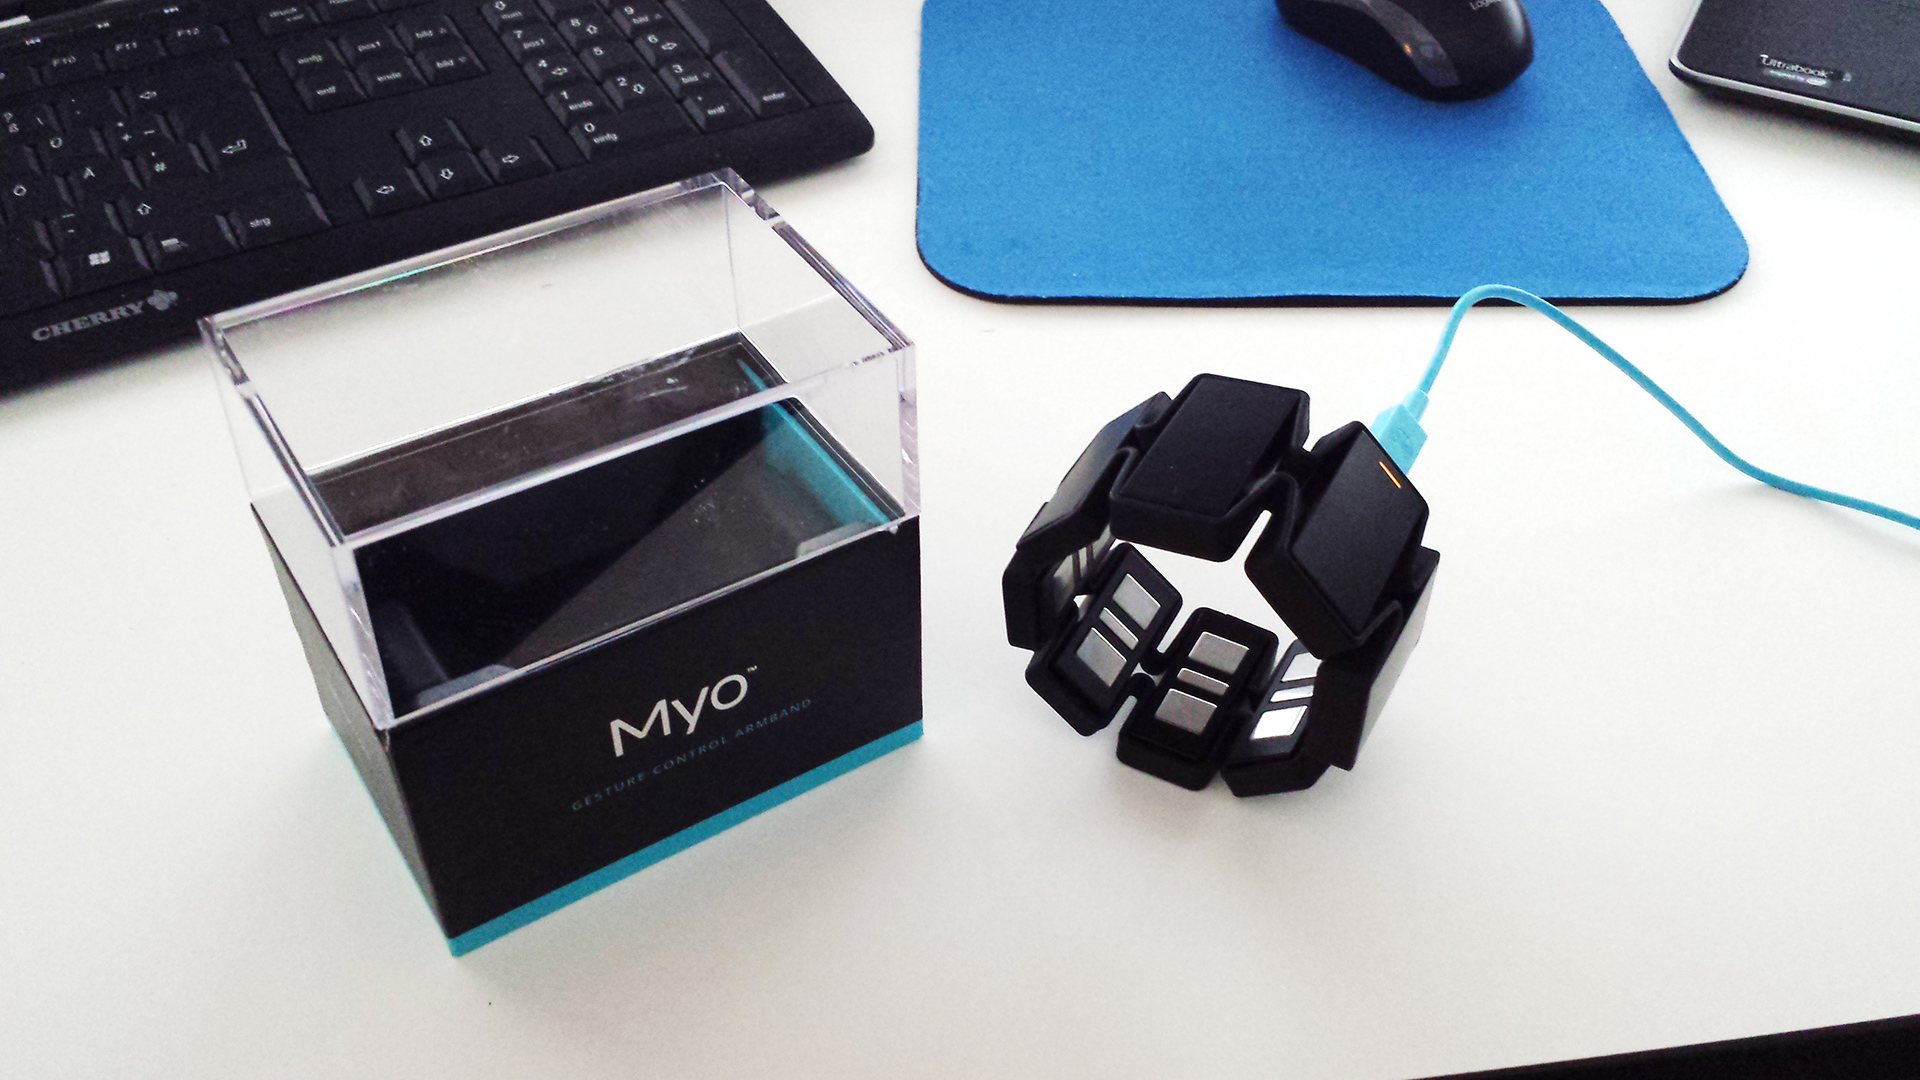 Unboxing the Myo Gesture Control Armband